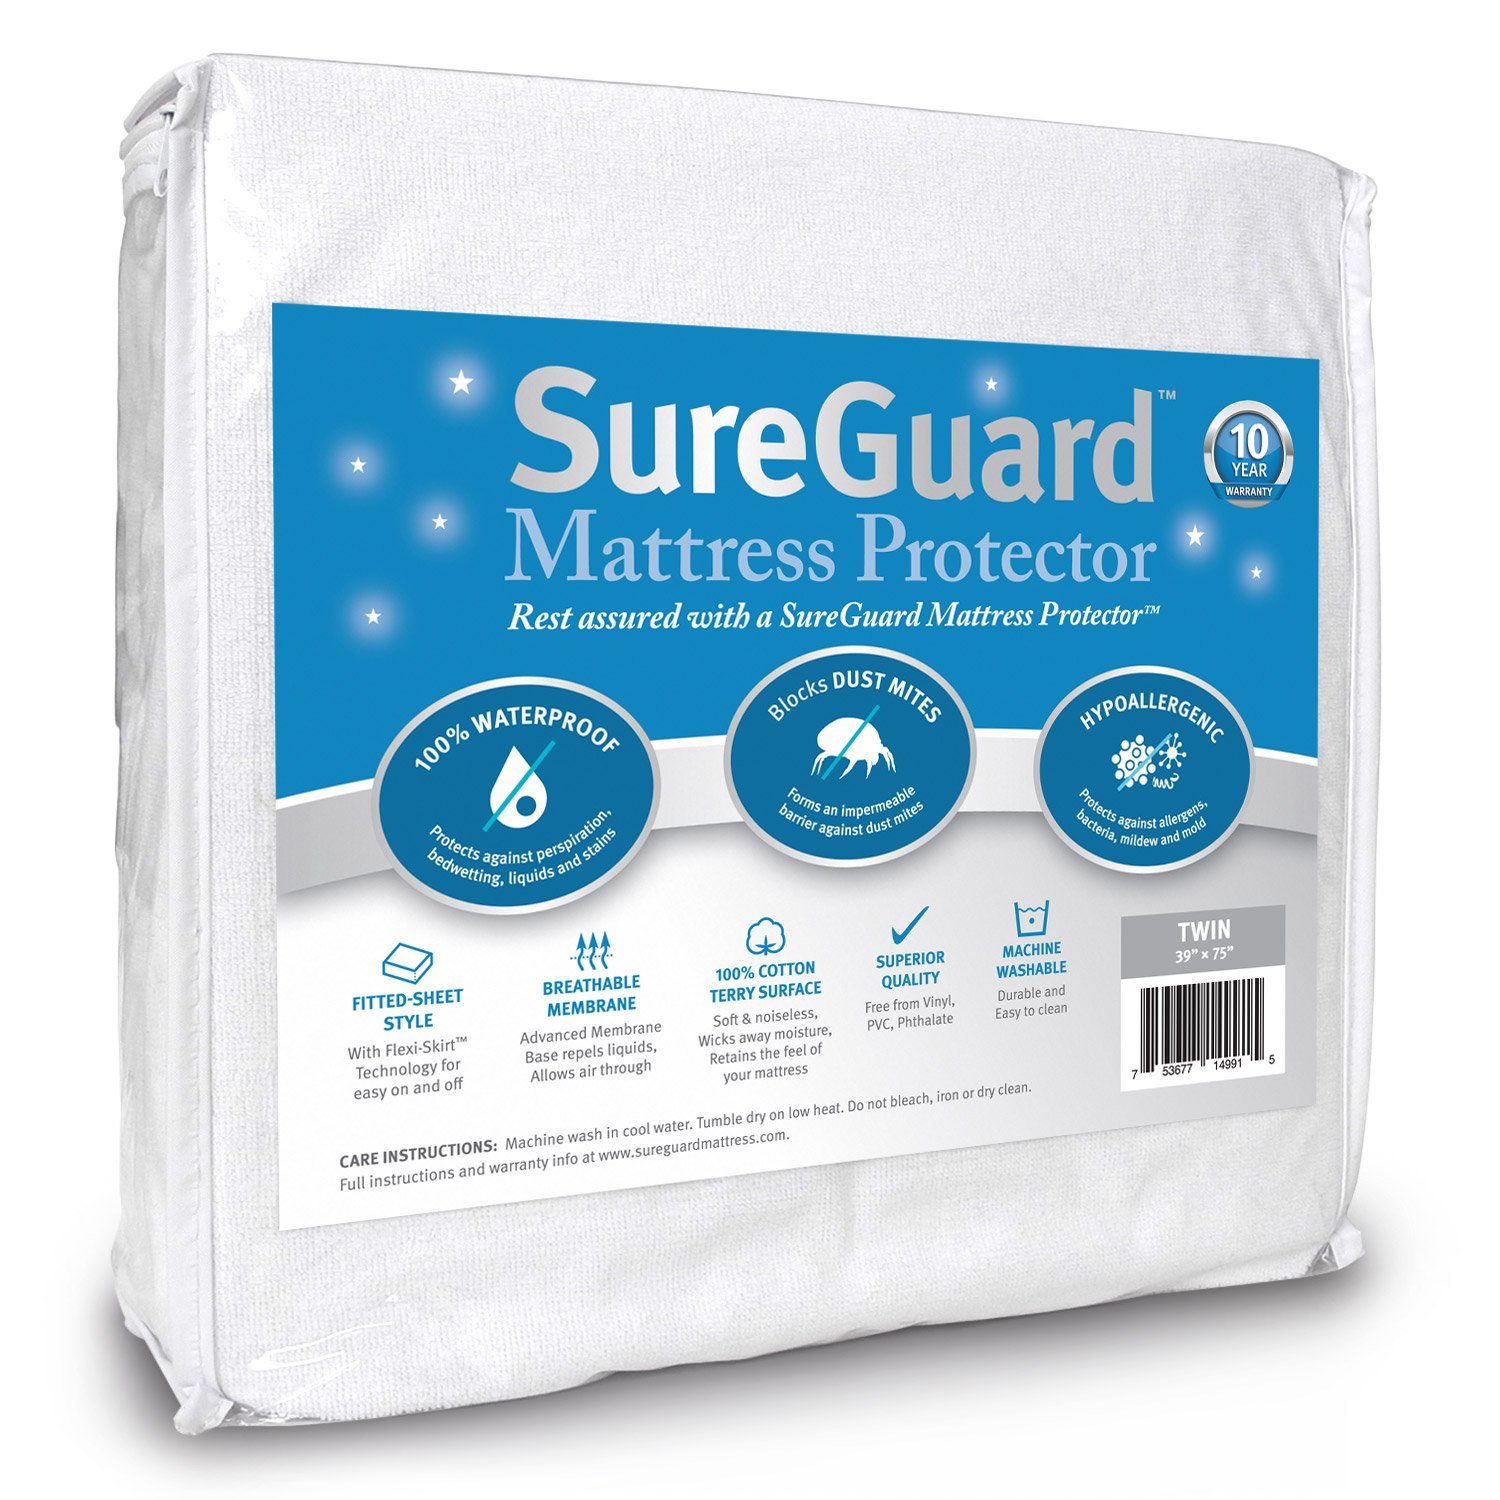 SureGuard, Mattress Protector for Night Sweats, Urinary and Bladder Problems